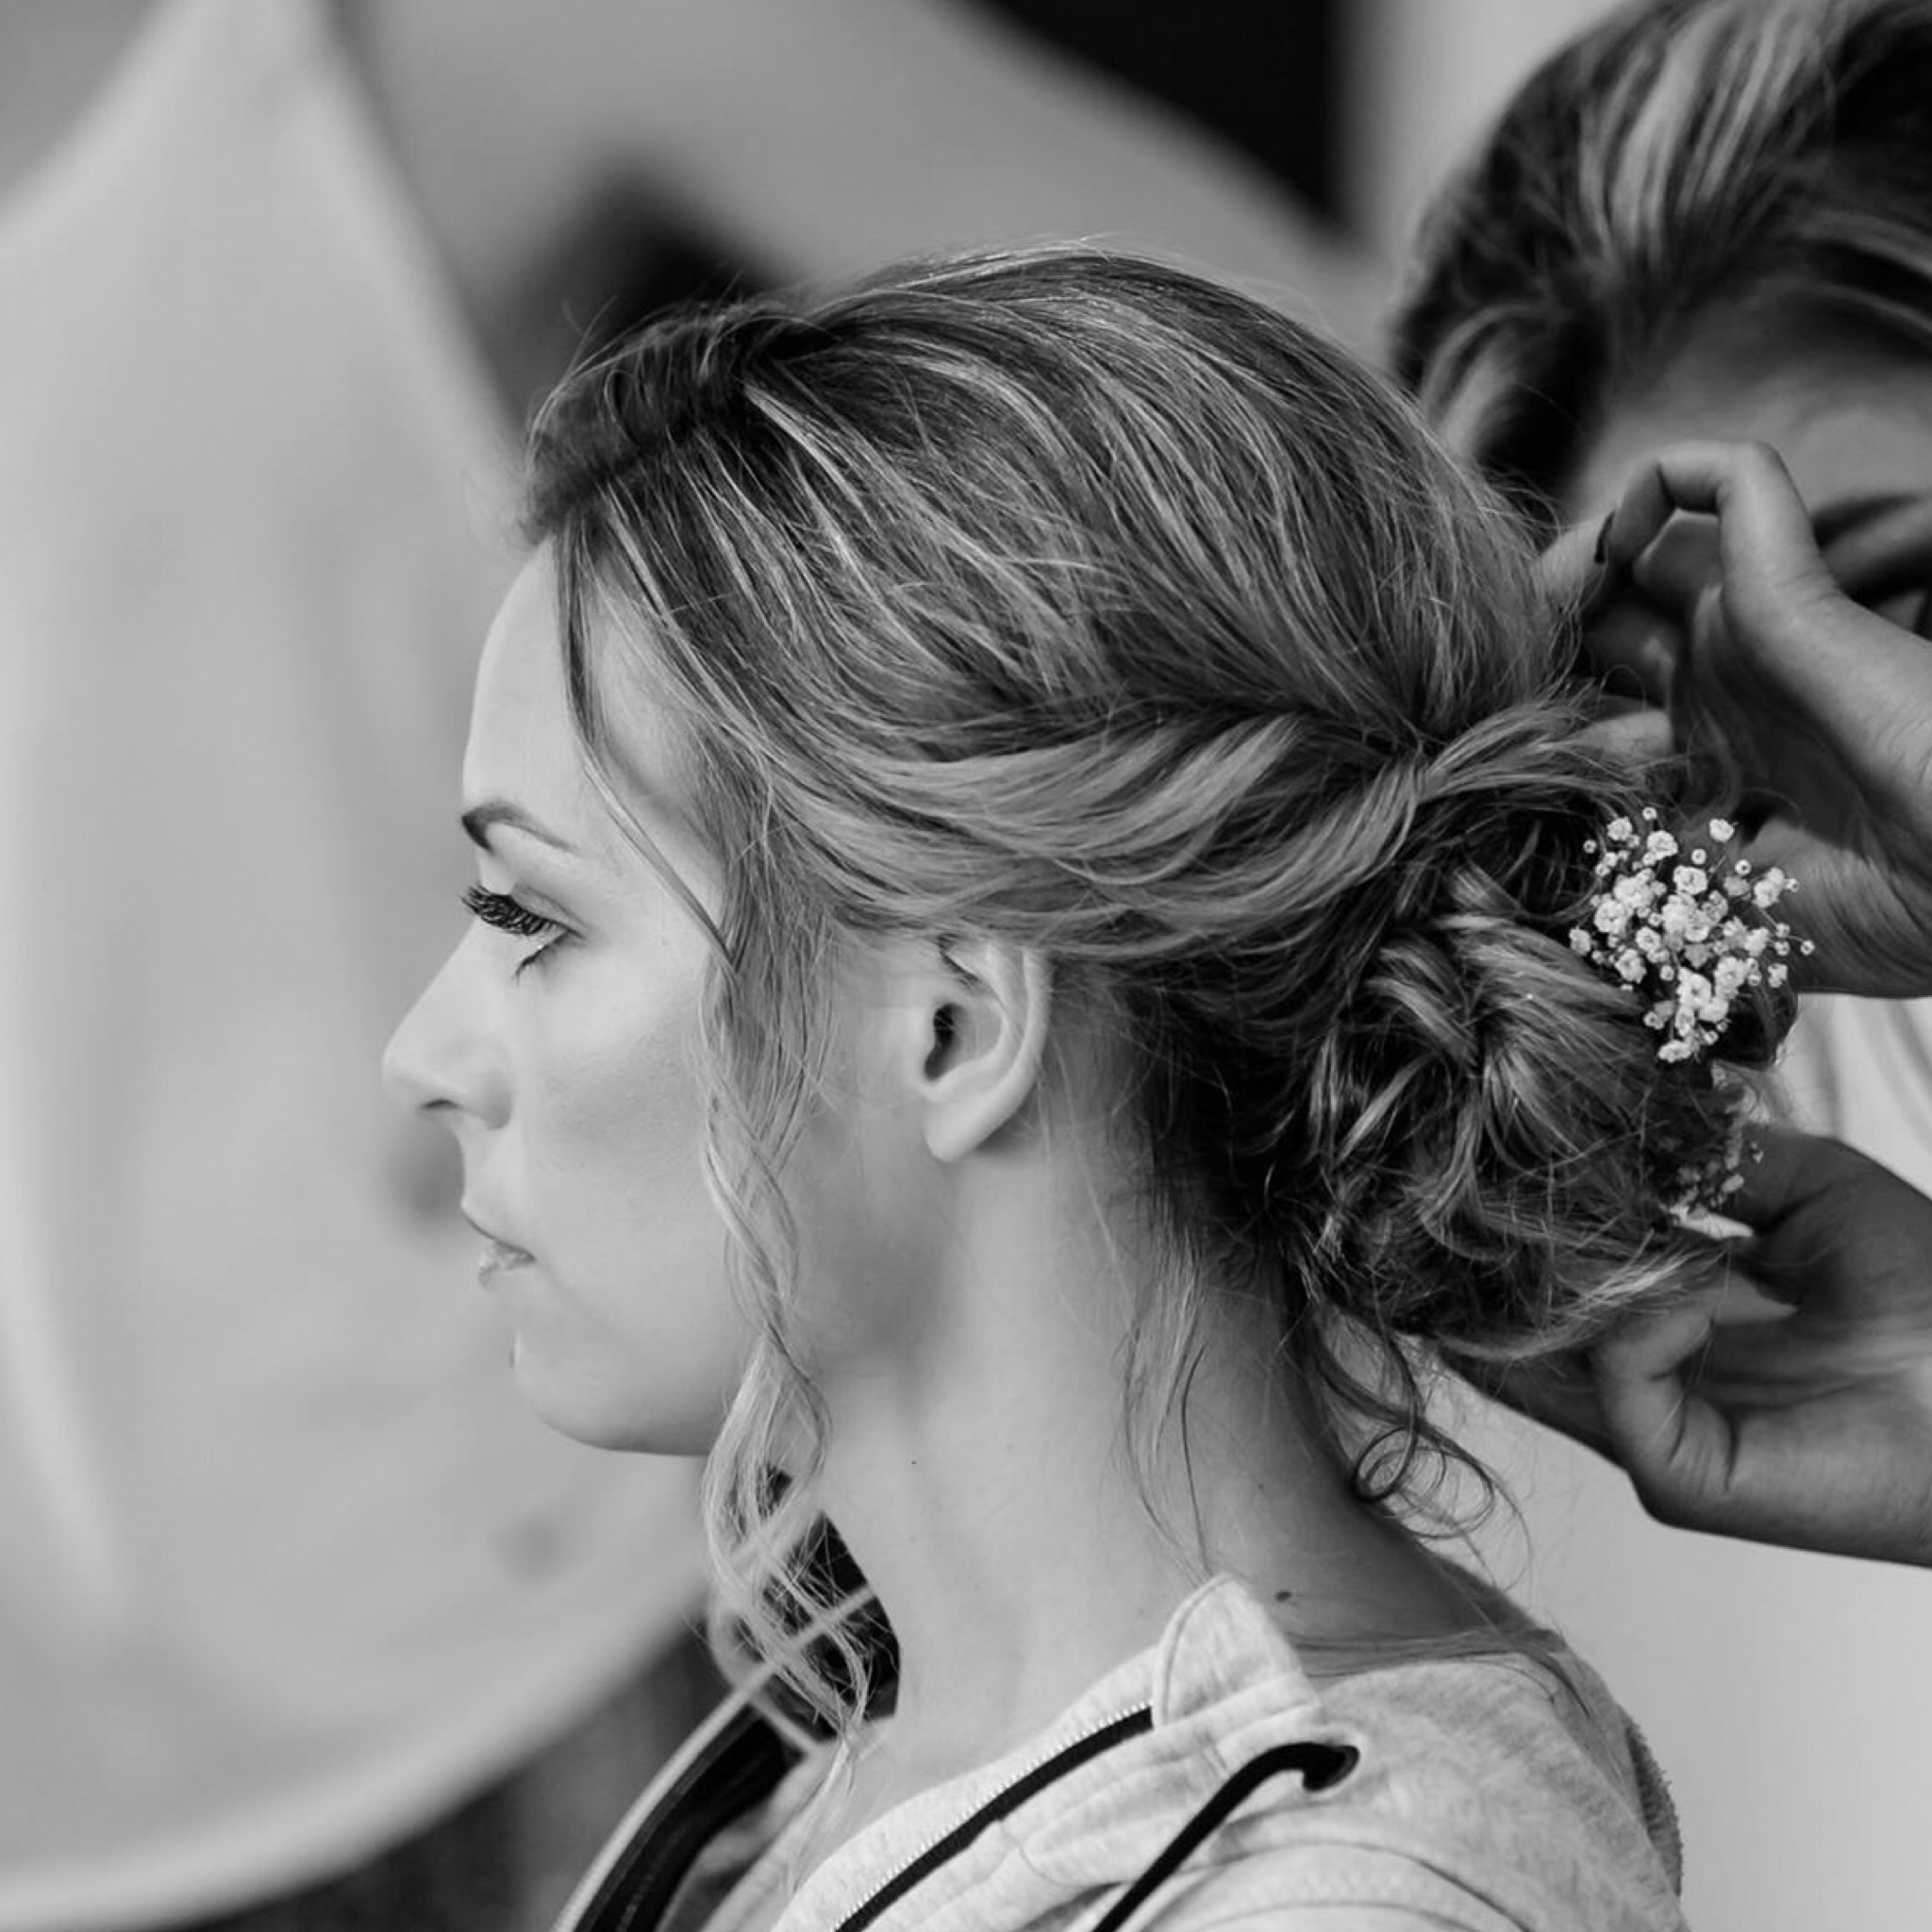 beautiful bride getting hair and makeup touch ups